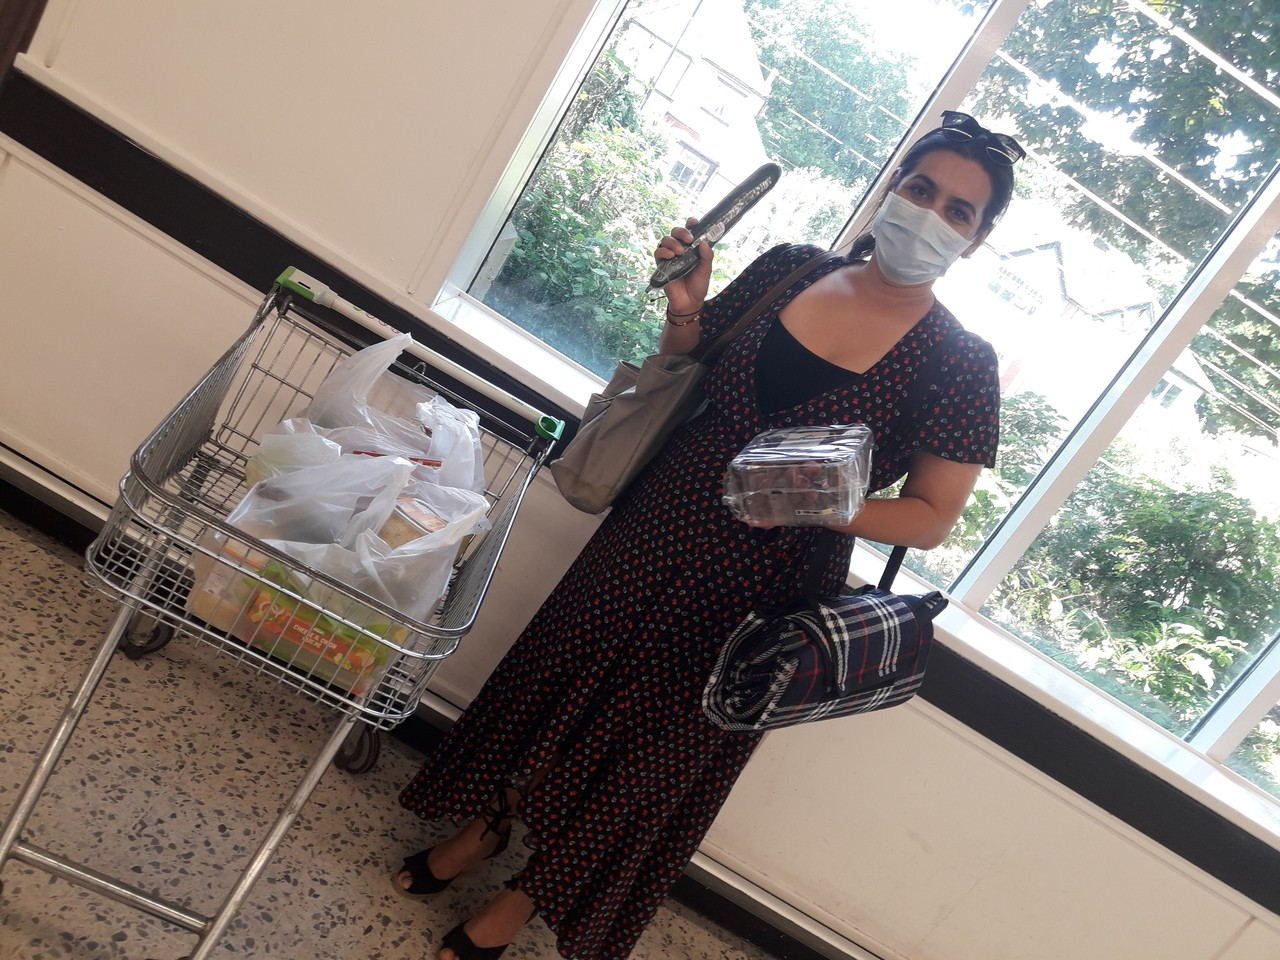 Donation for picnic | Asda Roehampton